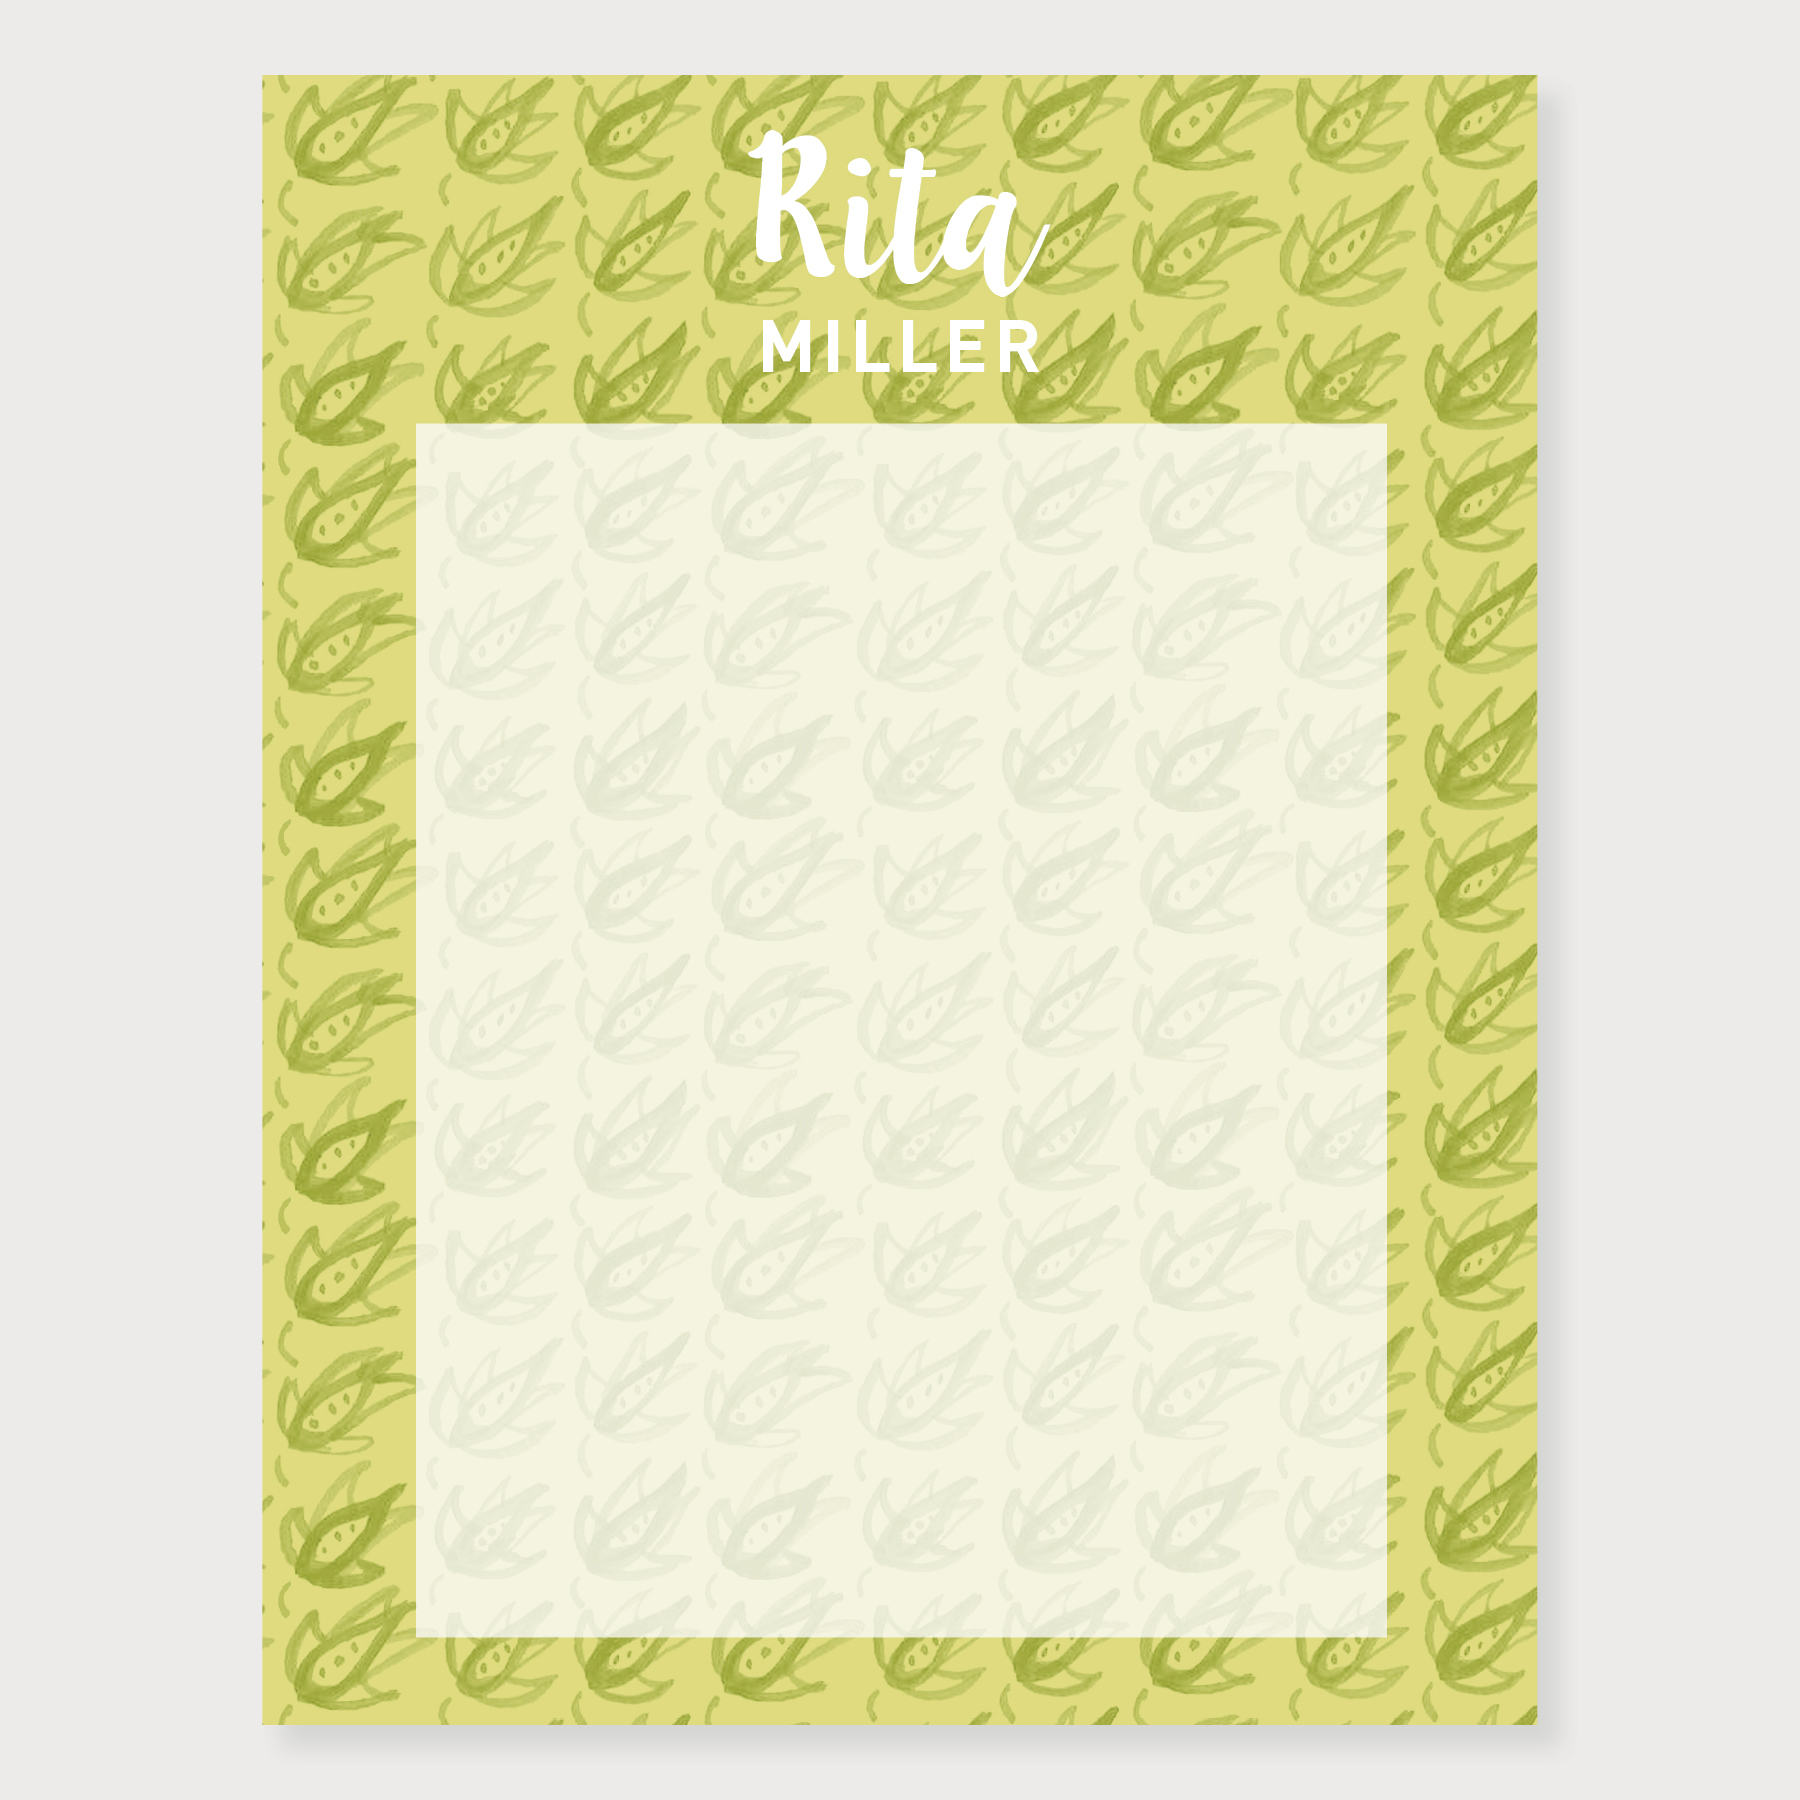 LillyNoteCard_chartreuse.jpg